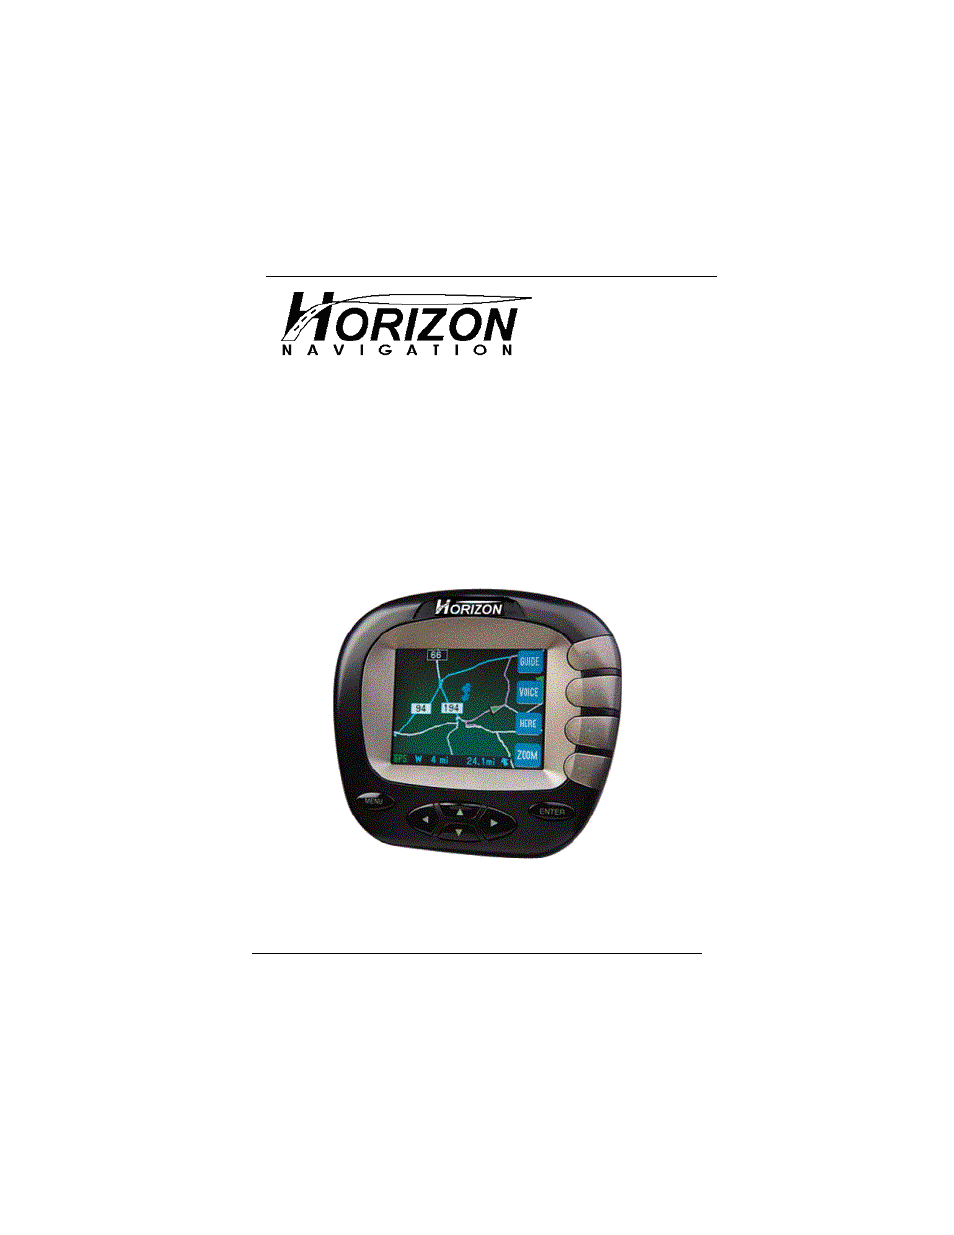 horizon navigation navmate car gps receiver user manual 68 pages rh manualsdir com Owner's Manual Manuals in PDF